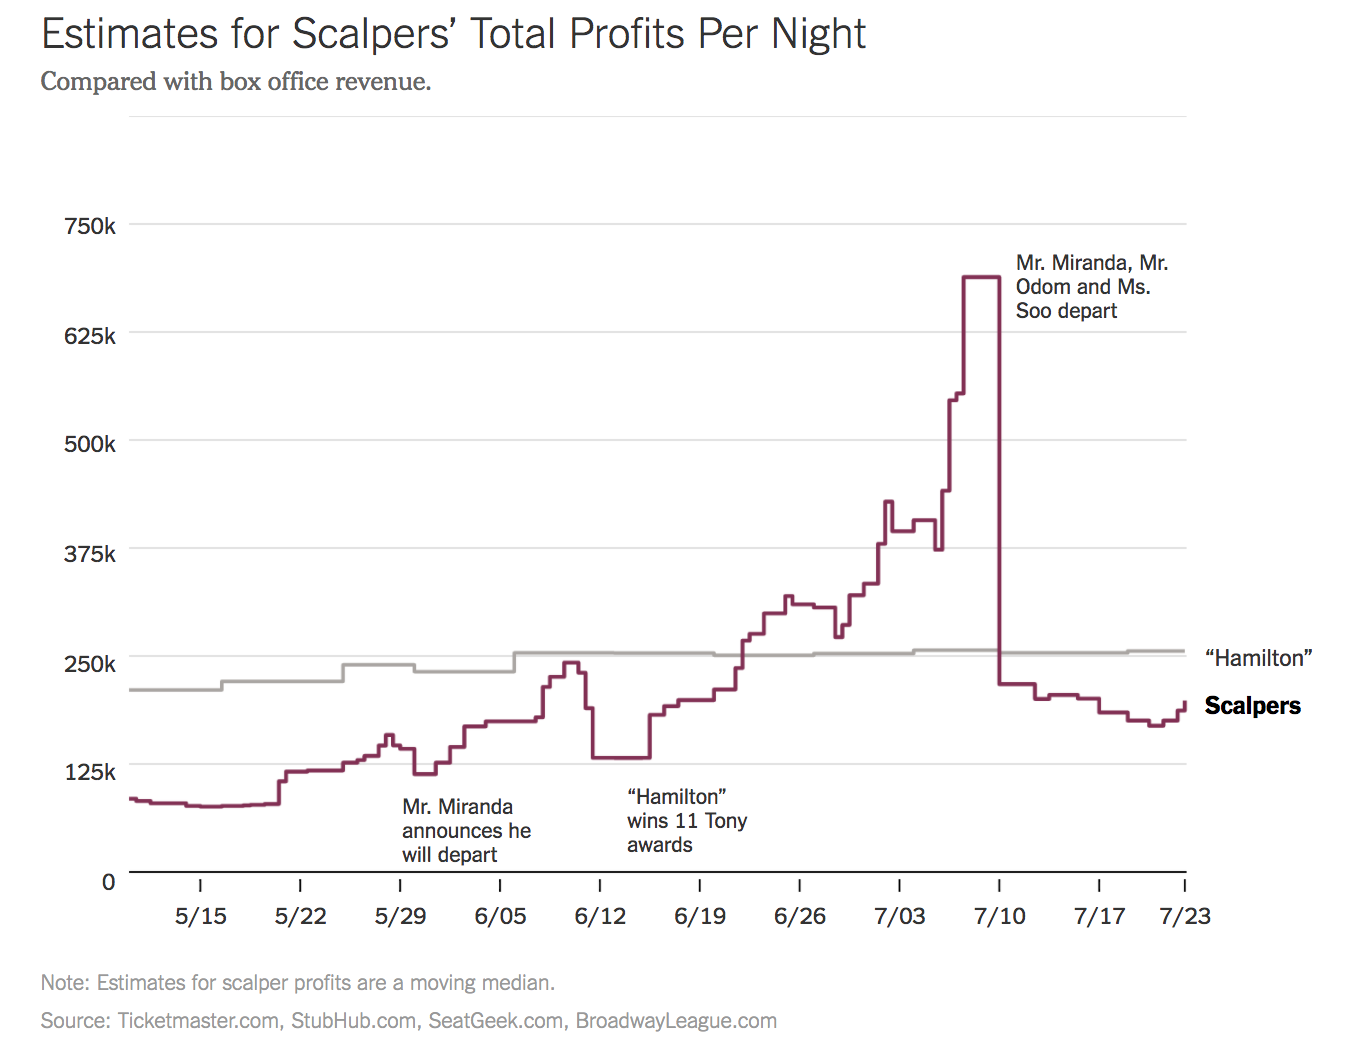 Ticket Scalping Technology And The Effects On Arts Cultural Little Wonder Engine Diagrams Figure 4 Estimates For Scalpers Total Profits Per Night As Compared With Box Office Revenue Graph From New York Times July 29 2016